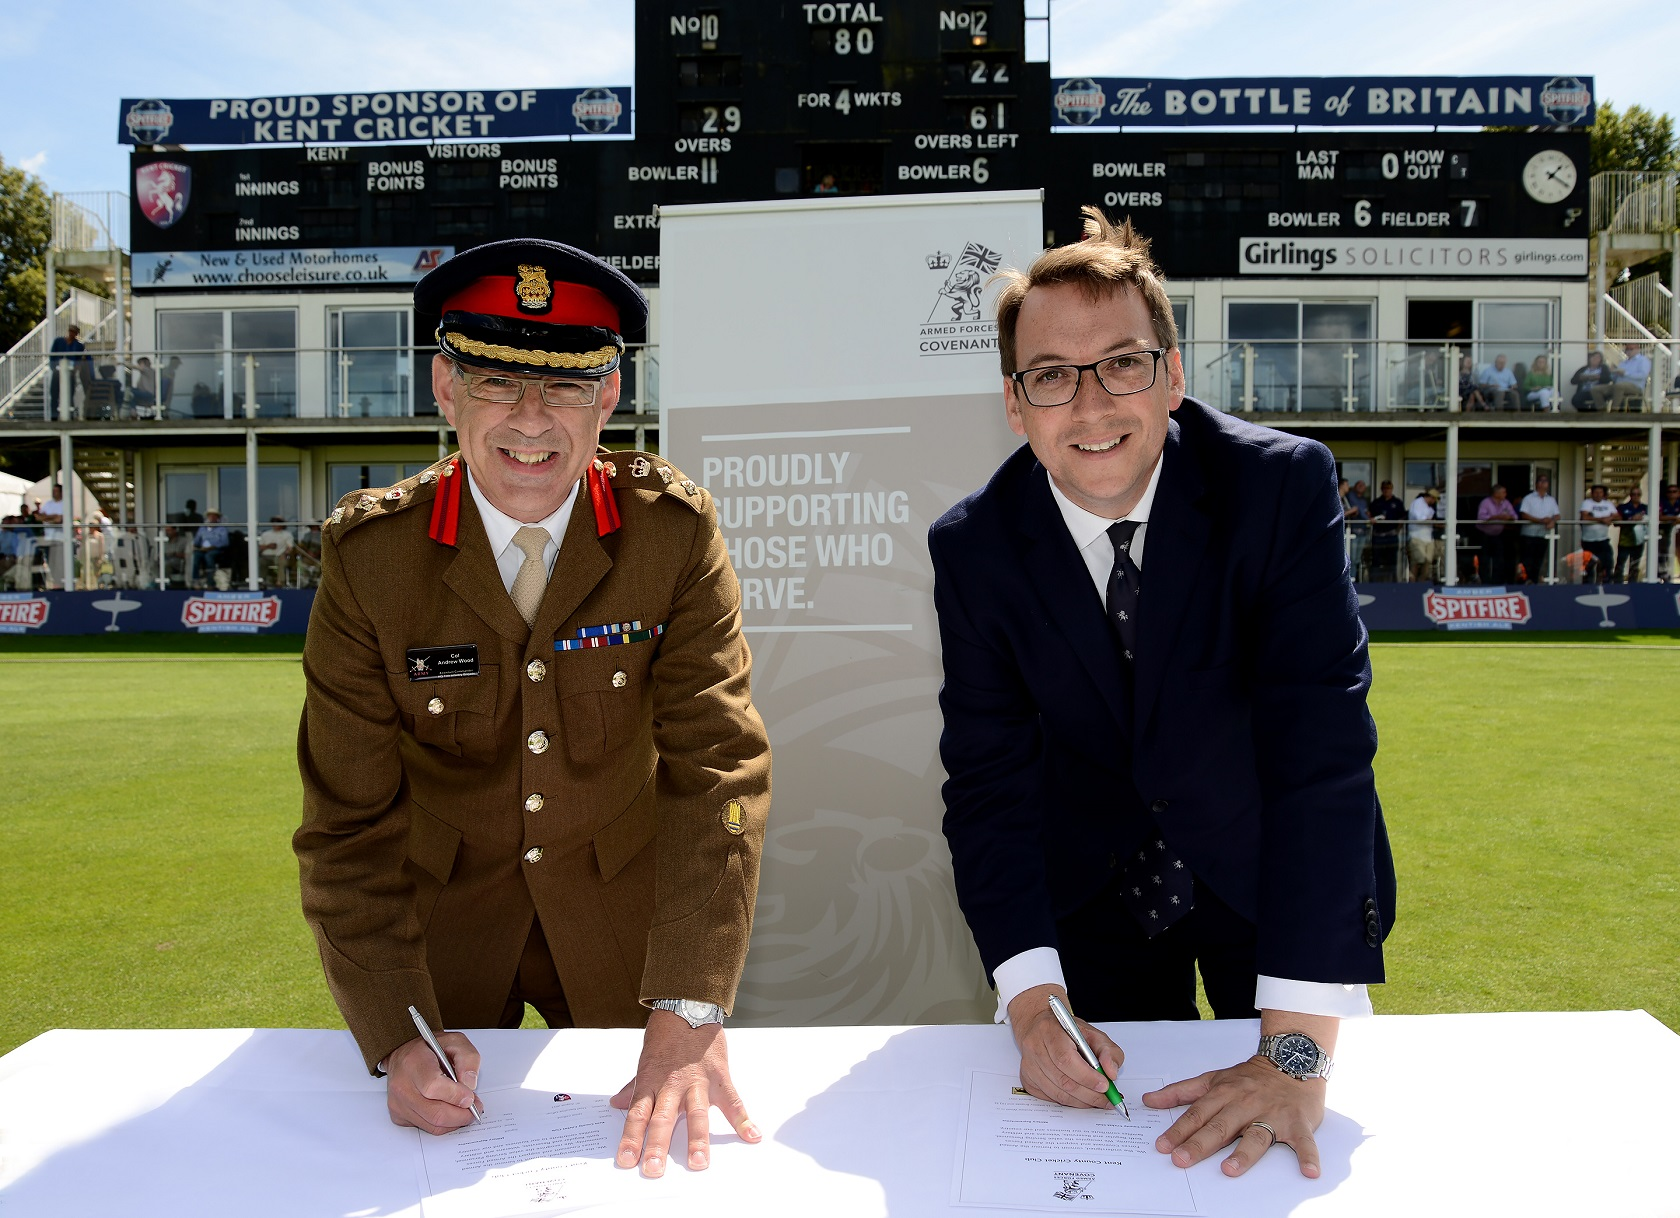 Kent County Cricket Club are the Latest Organisation to Sign the Armed Forces Covenant